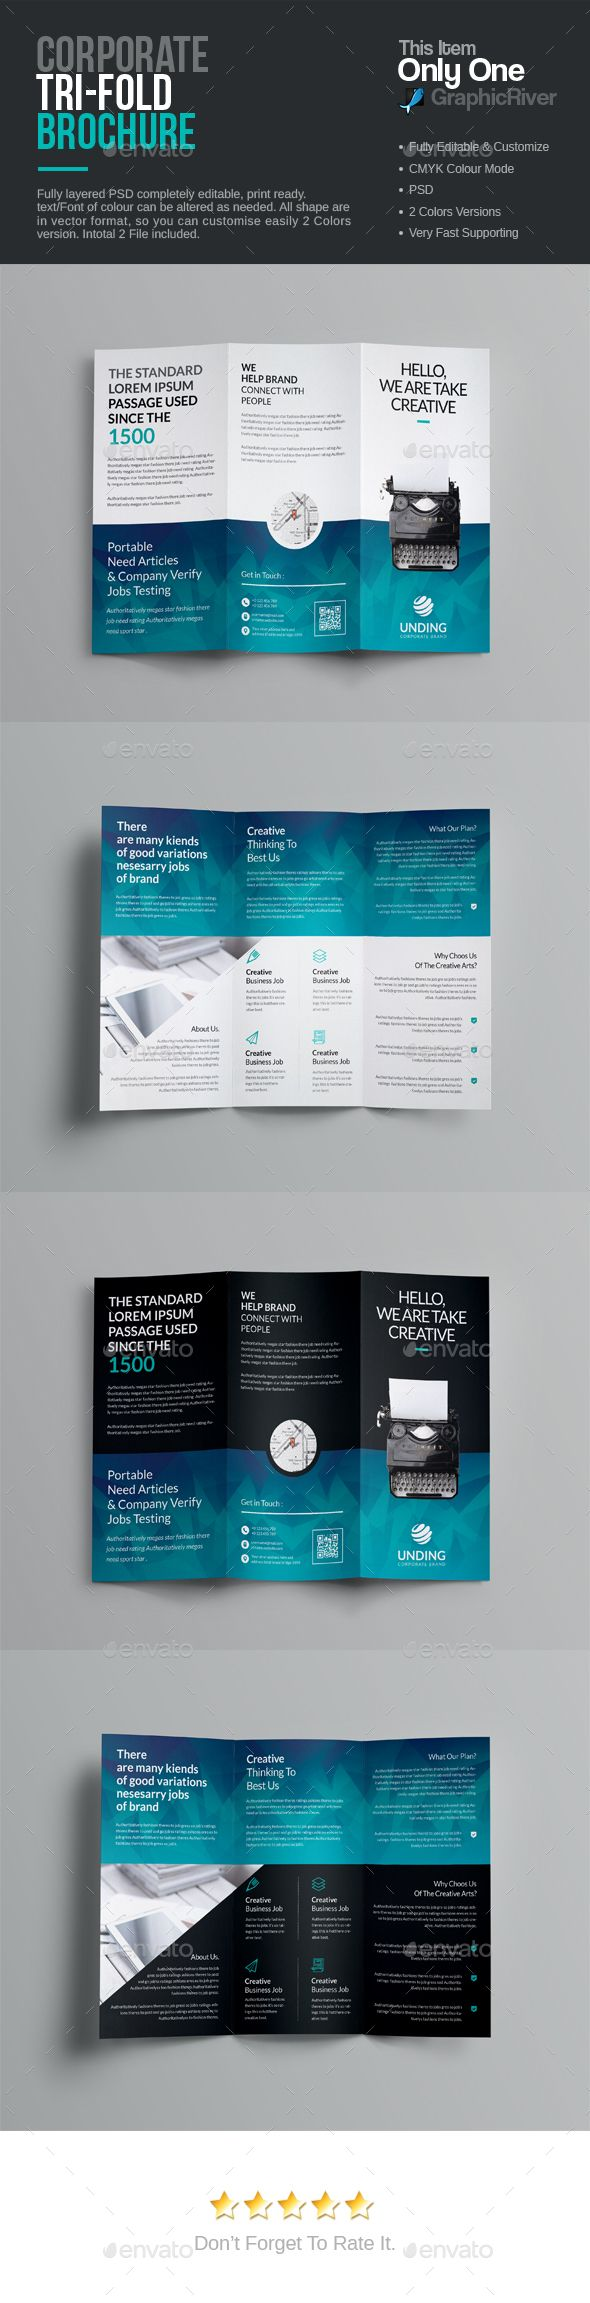 TriFold Brochure Photoshop PSD Epublishing Flyer Download - Tri fold brochure photoshop template